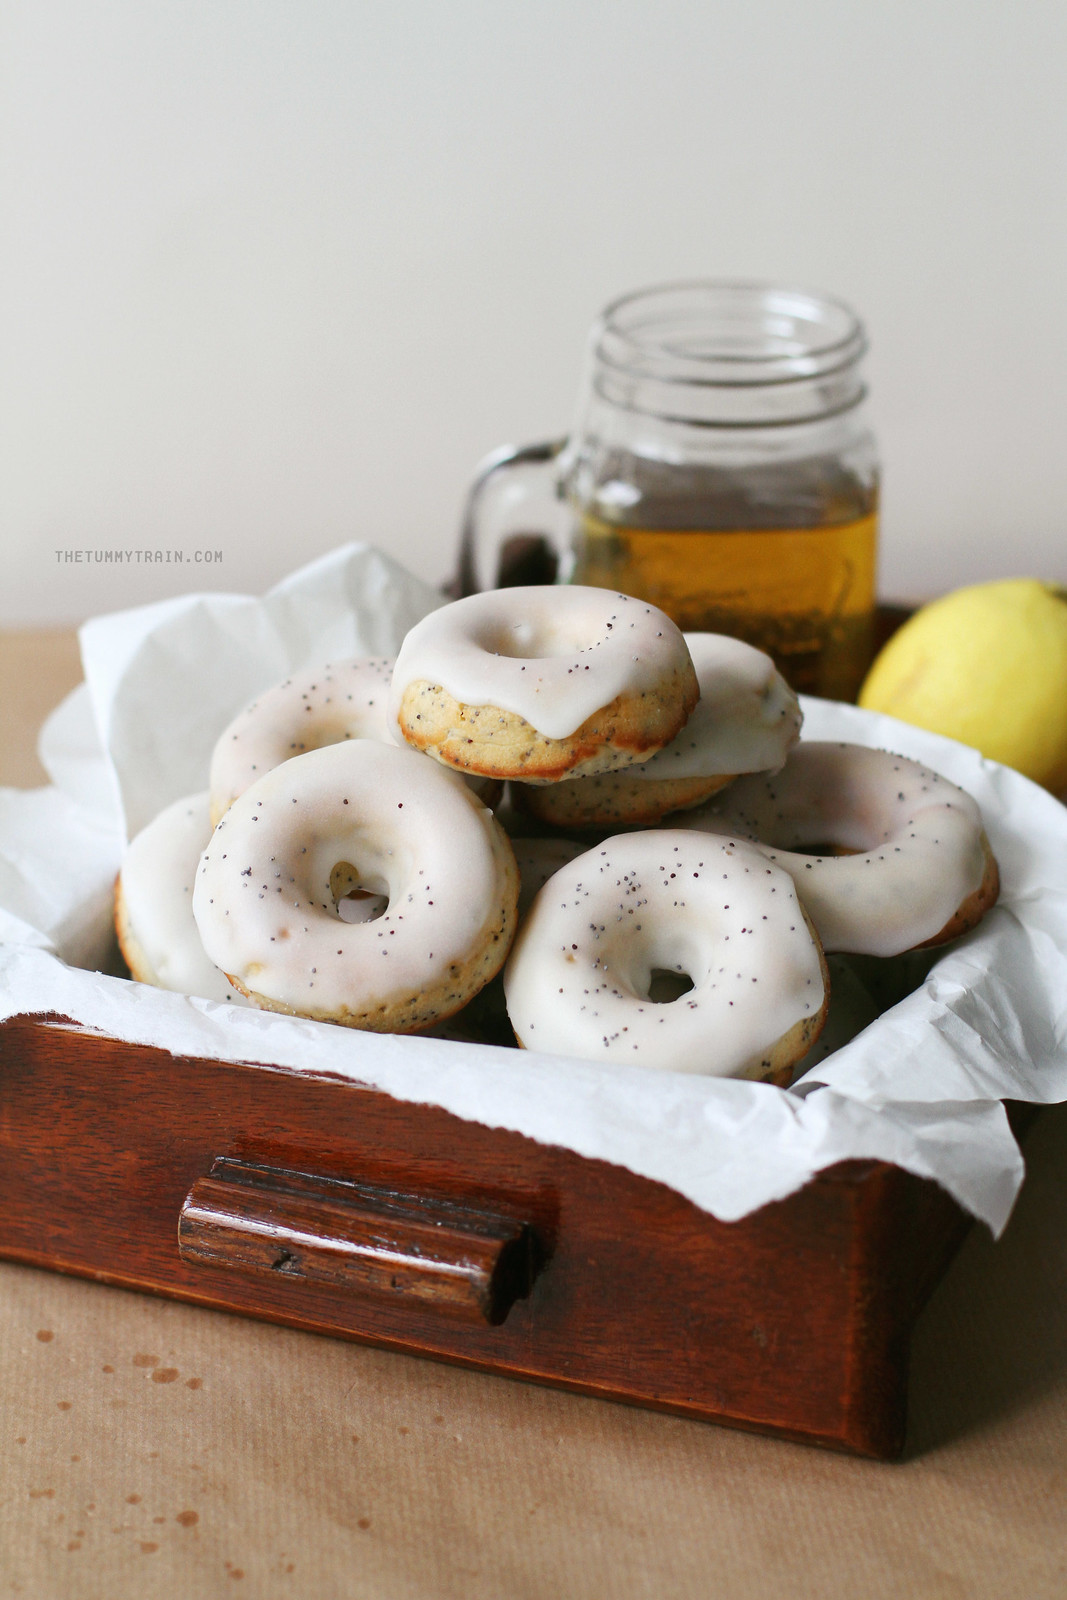 27534863394 7c33b86c46 h - Digging out these Baked Lemon Poppyseed Doughnuts from my archives